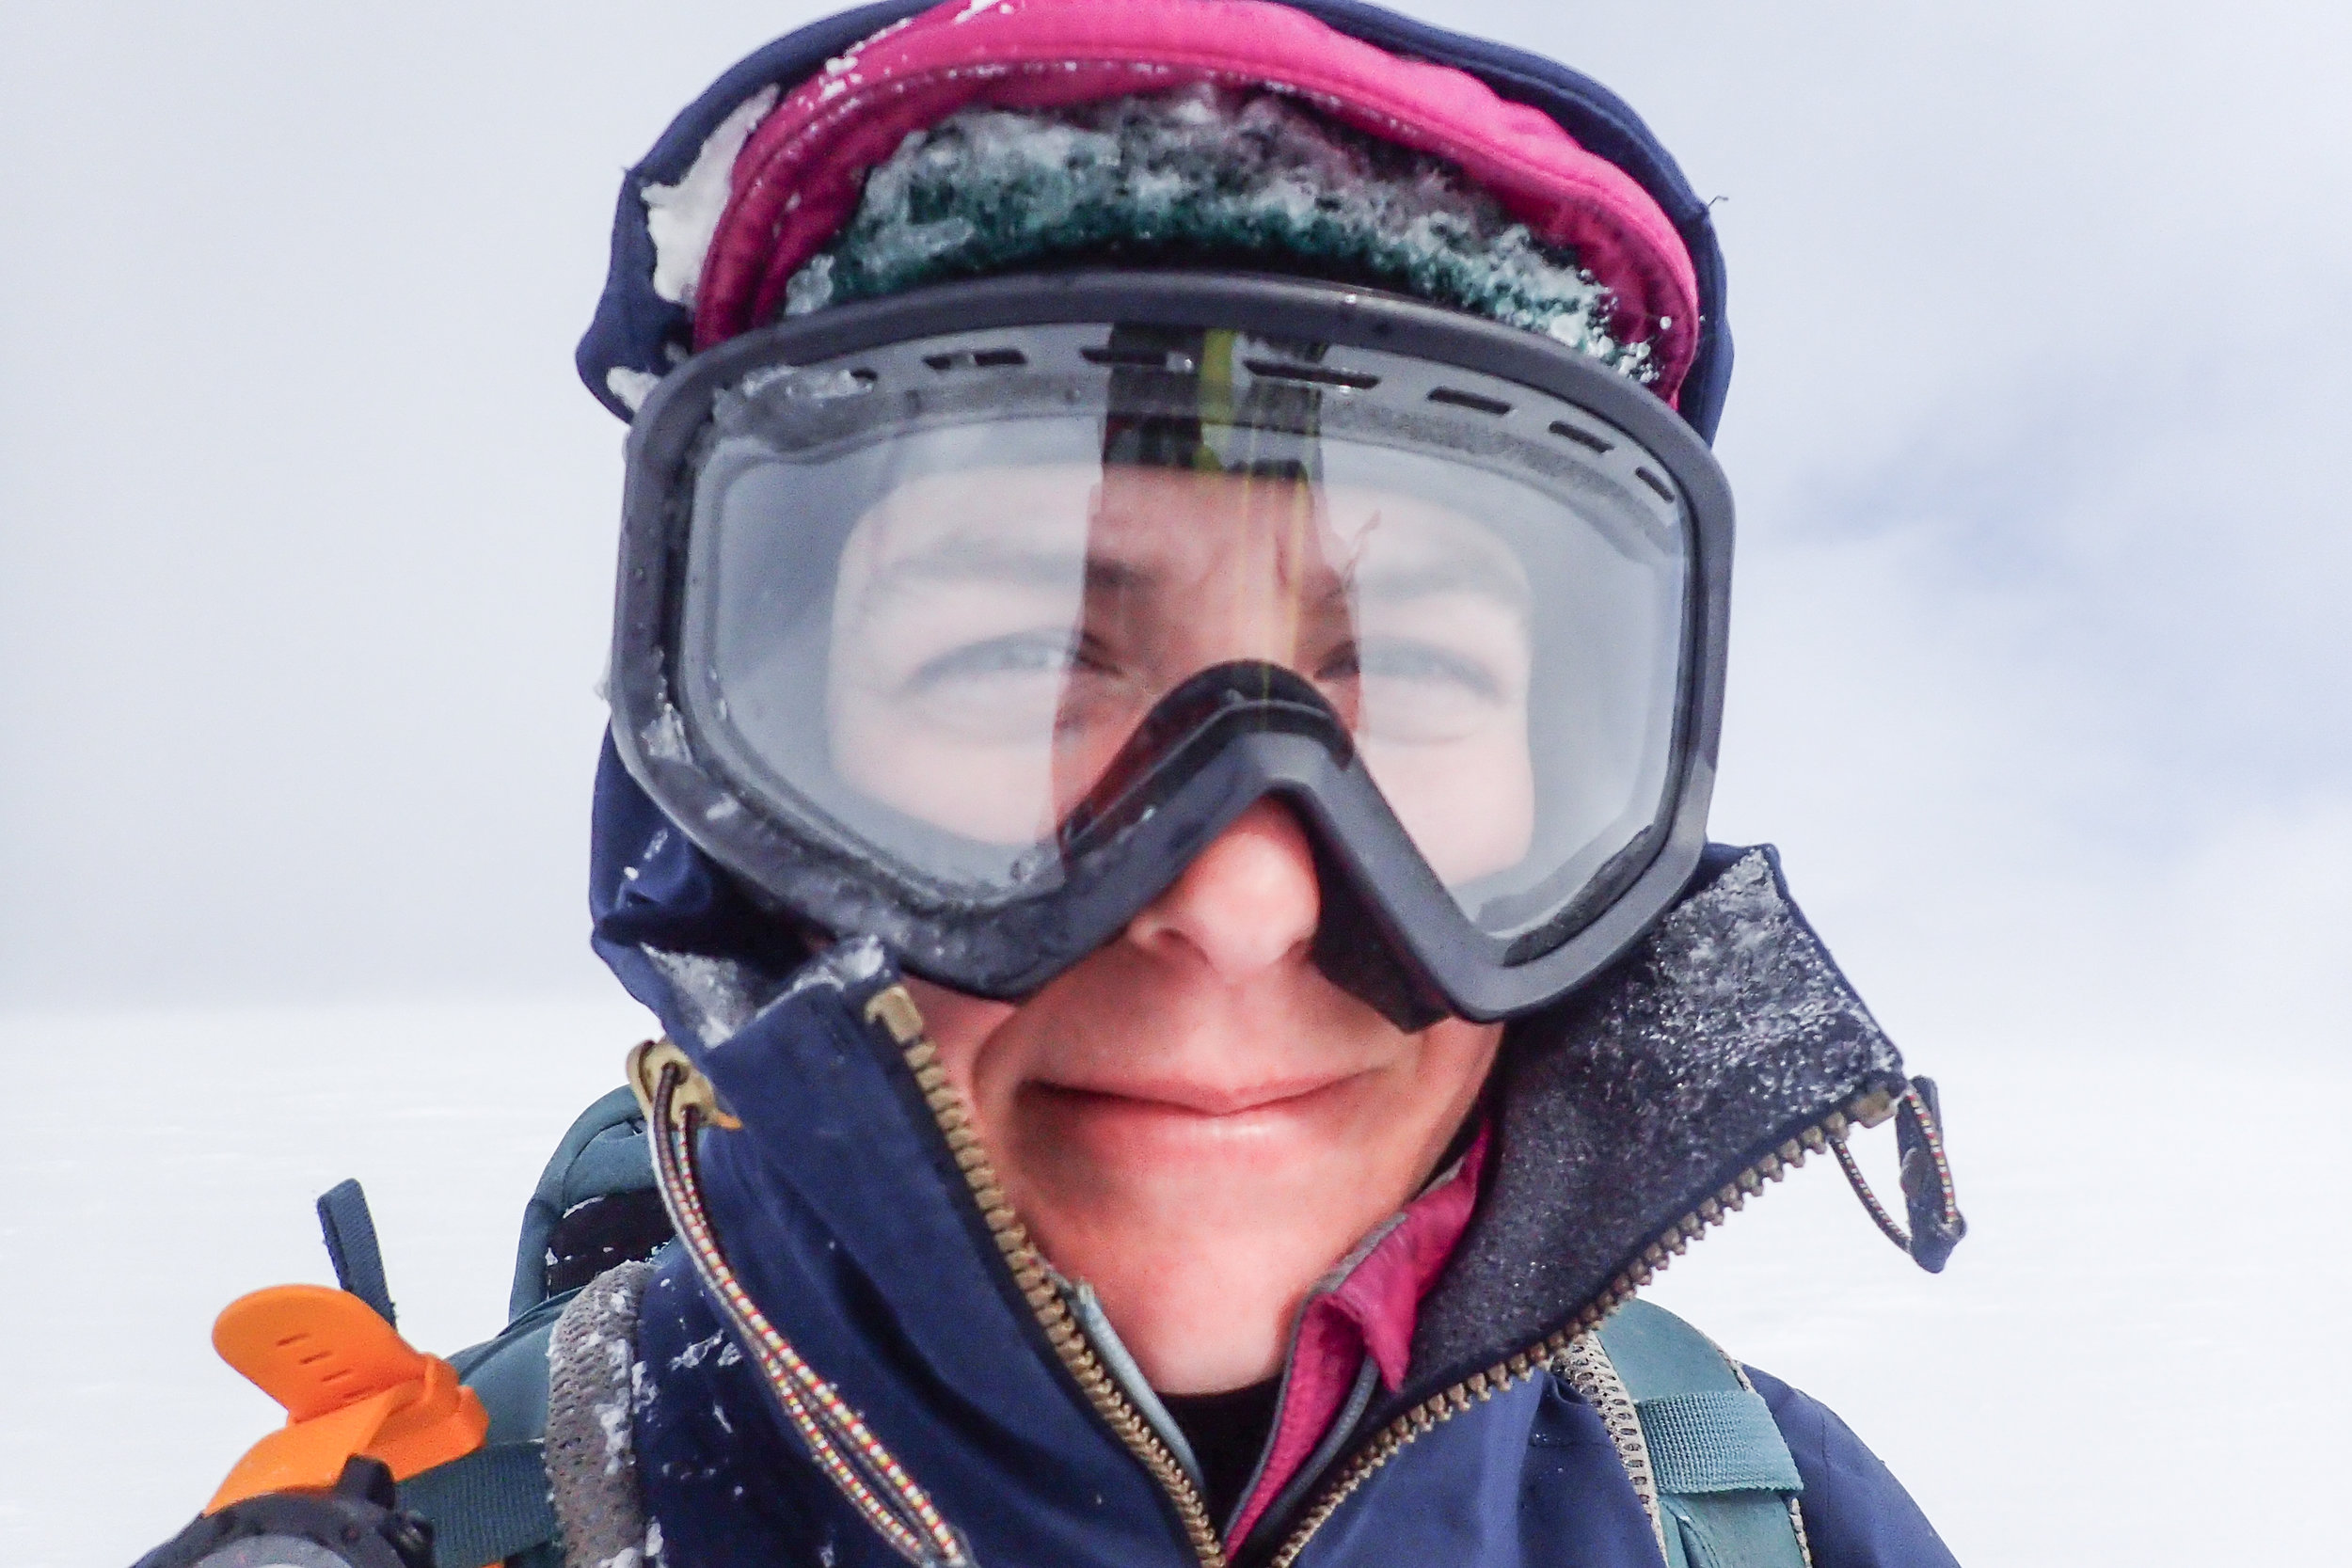 My face after some tough navigation across the Cairngorm Plateau in a whiteout back in March.